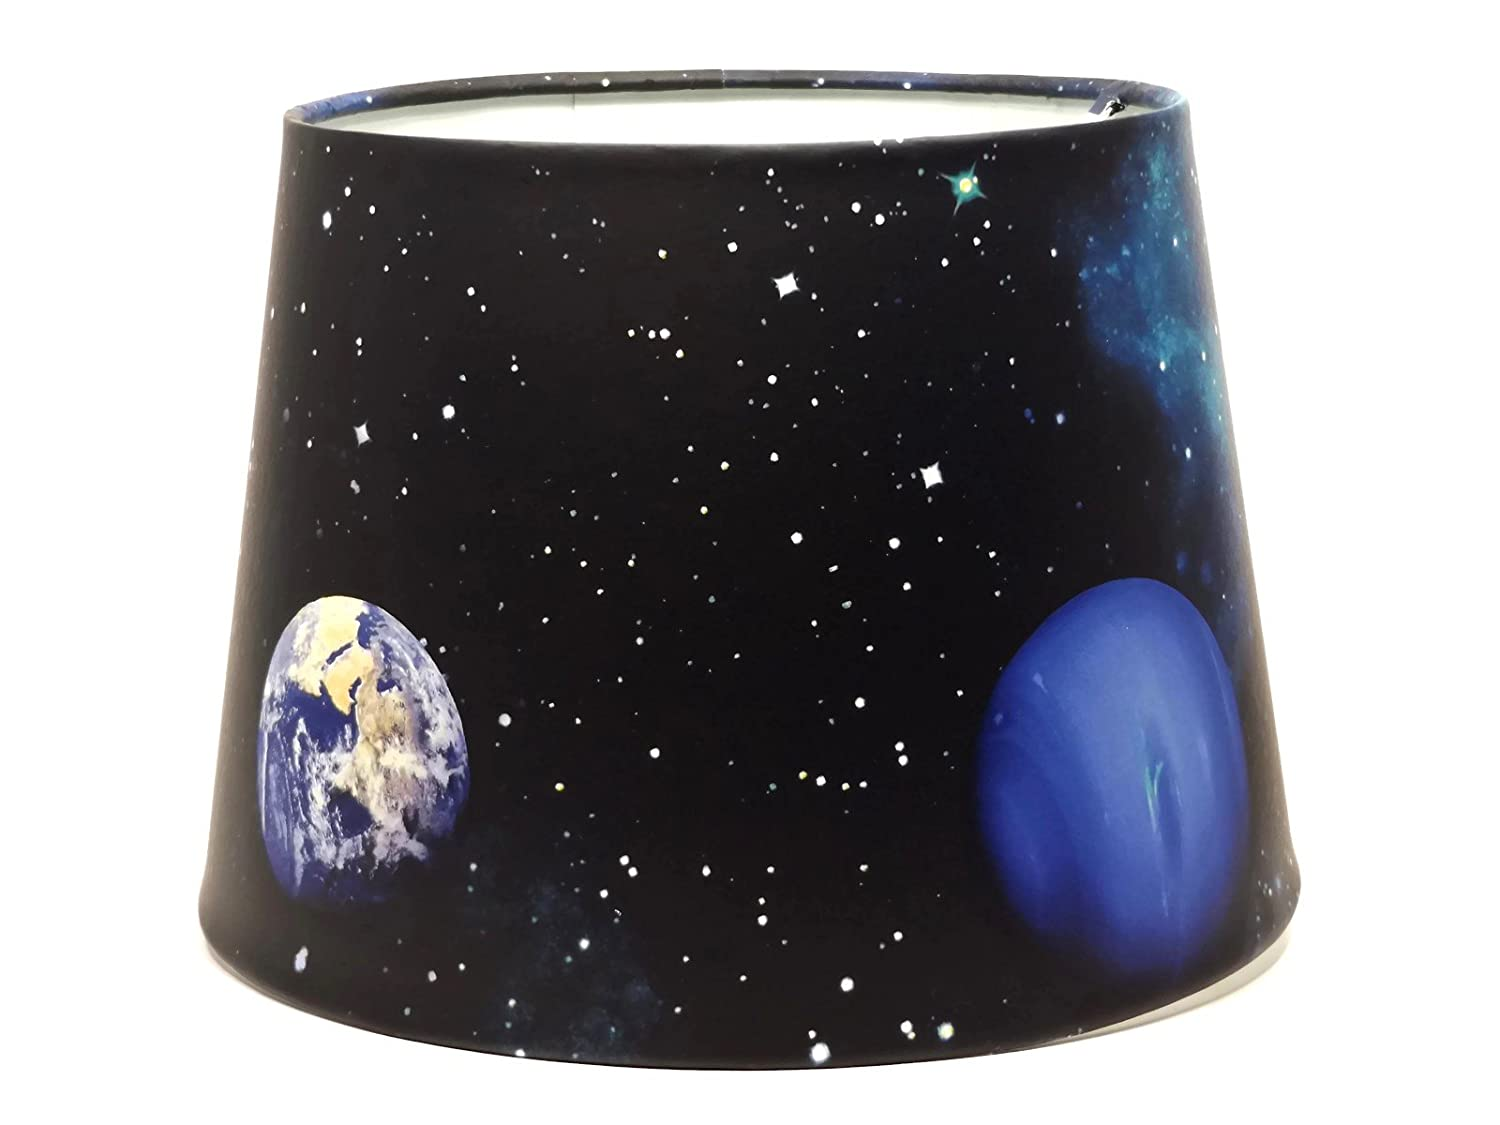 Space Planet Lampshade Ceiling Light Shade Planets Stars Earth Rocket Spaceman Spaceship Boys Girls Bedroom Nursery Accessories 9.5